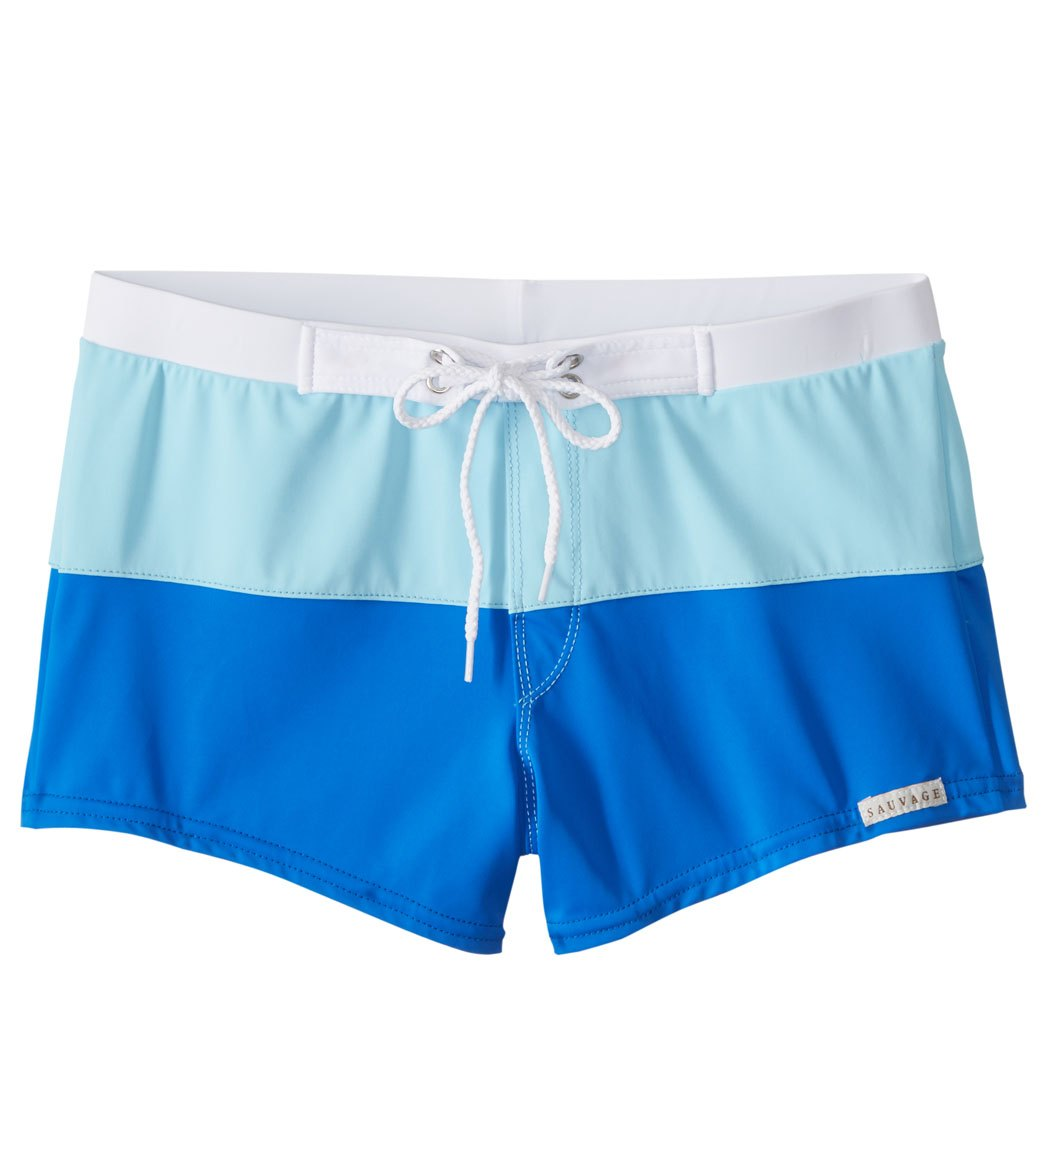 d3bd1b8513 Sauvage Splice Retro Swim Trunks at SwimOutlet.com - Free Shipping